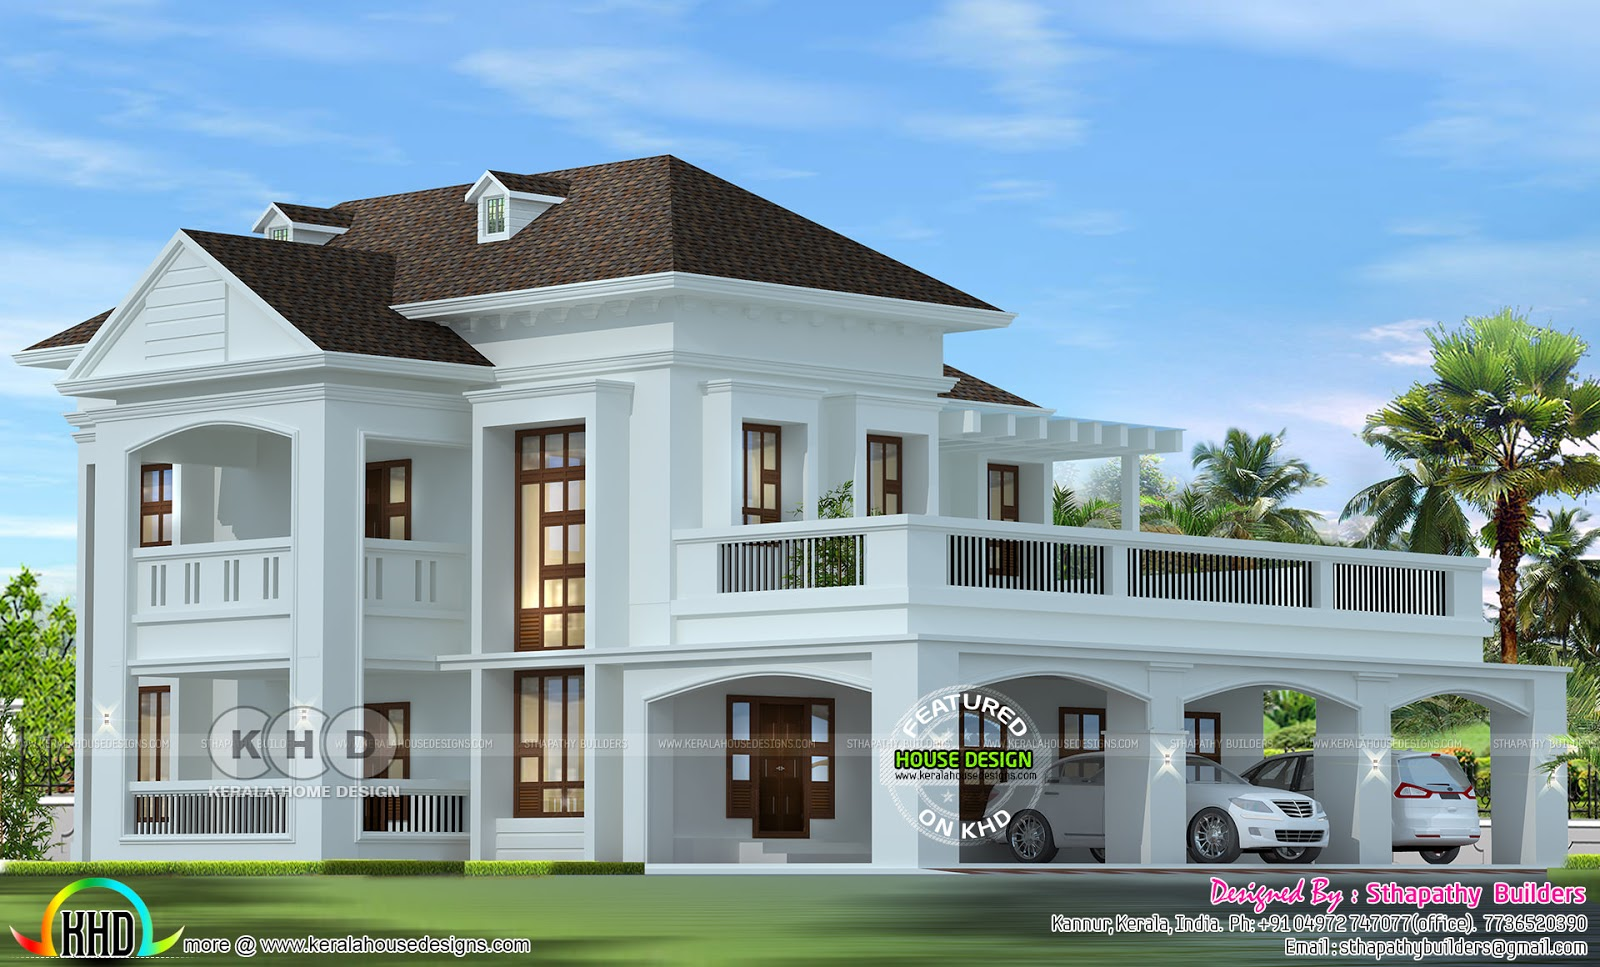 2724 Square Feet Colonial Home Design Kerala Home Design And Floor Plans 8000 Houses